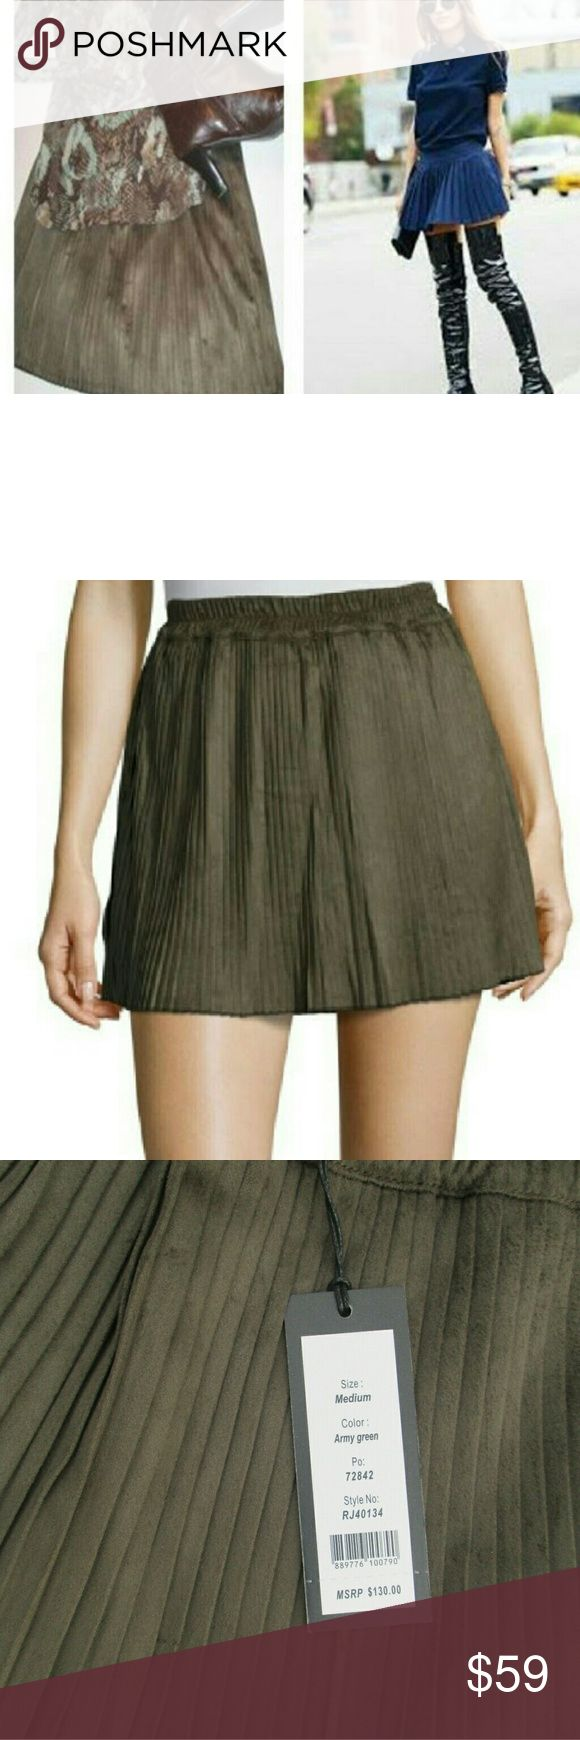 """Weekend Sale  Faux Suede Pleated Mini Luxuriously soft faux suede mini  the hottest color of the season. Accordion pleated skirt is 15"""" long and has a semi sheer black boy short attached under skirt to  prevent wardrobe malfunctions.. See  additional photos for color in natural light.   Regular price 59 Romeo & Juliet Couture Skirts Mini"""